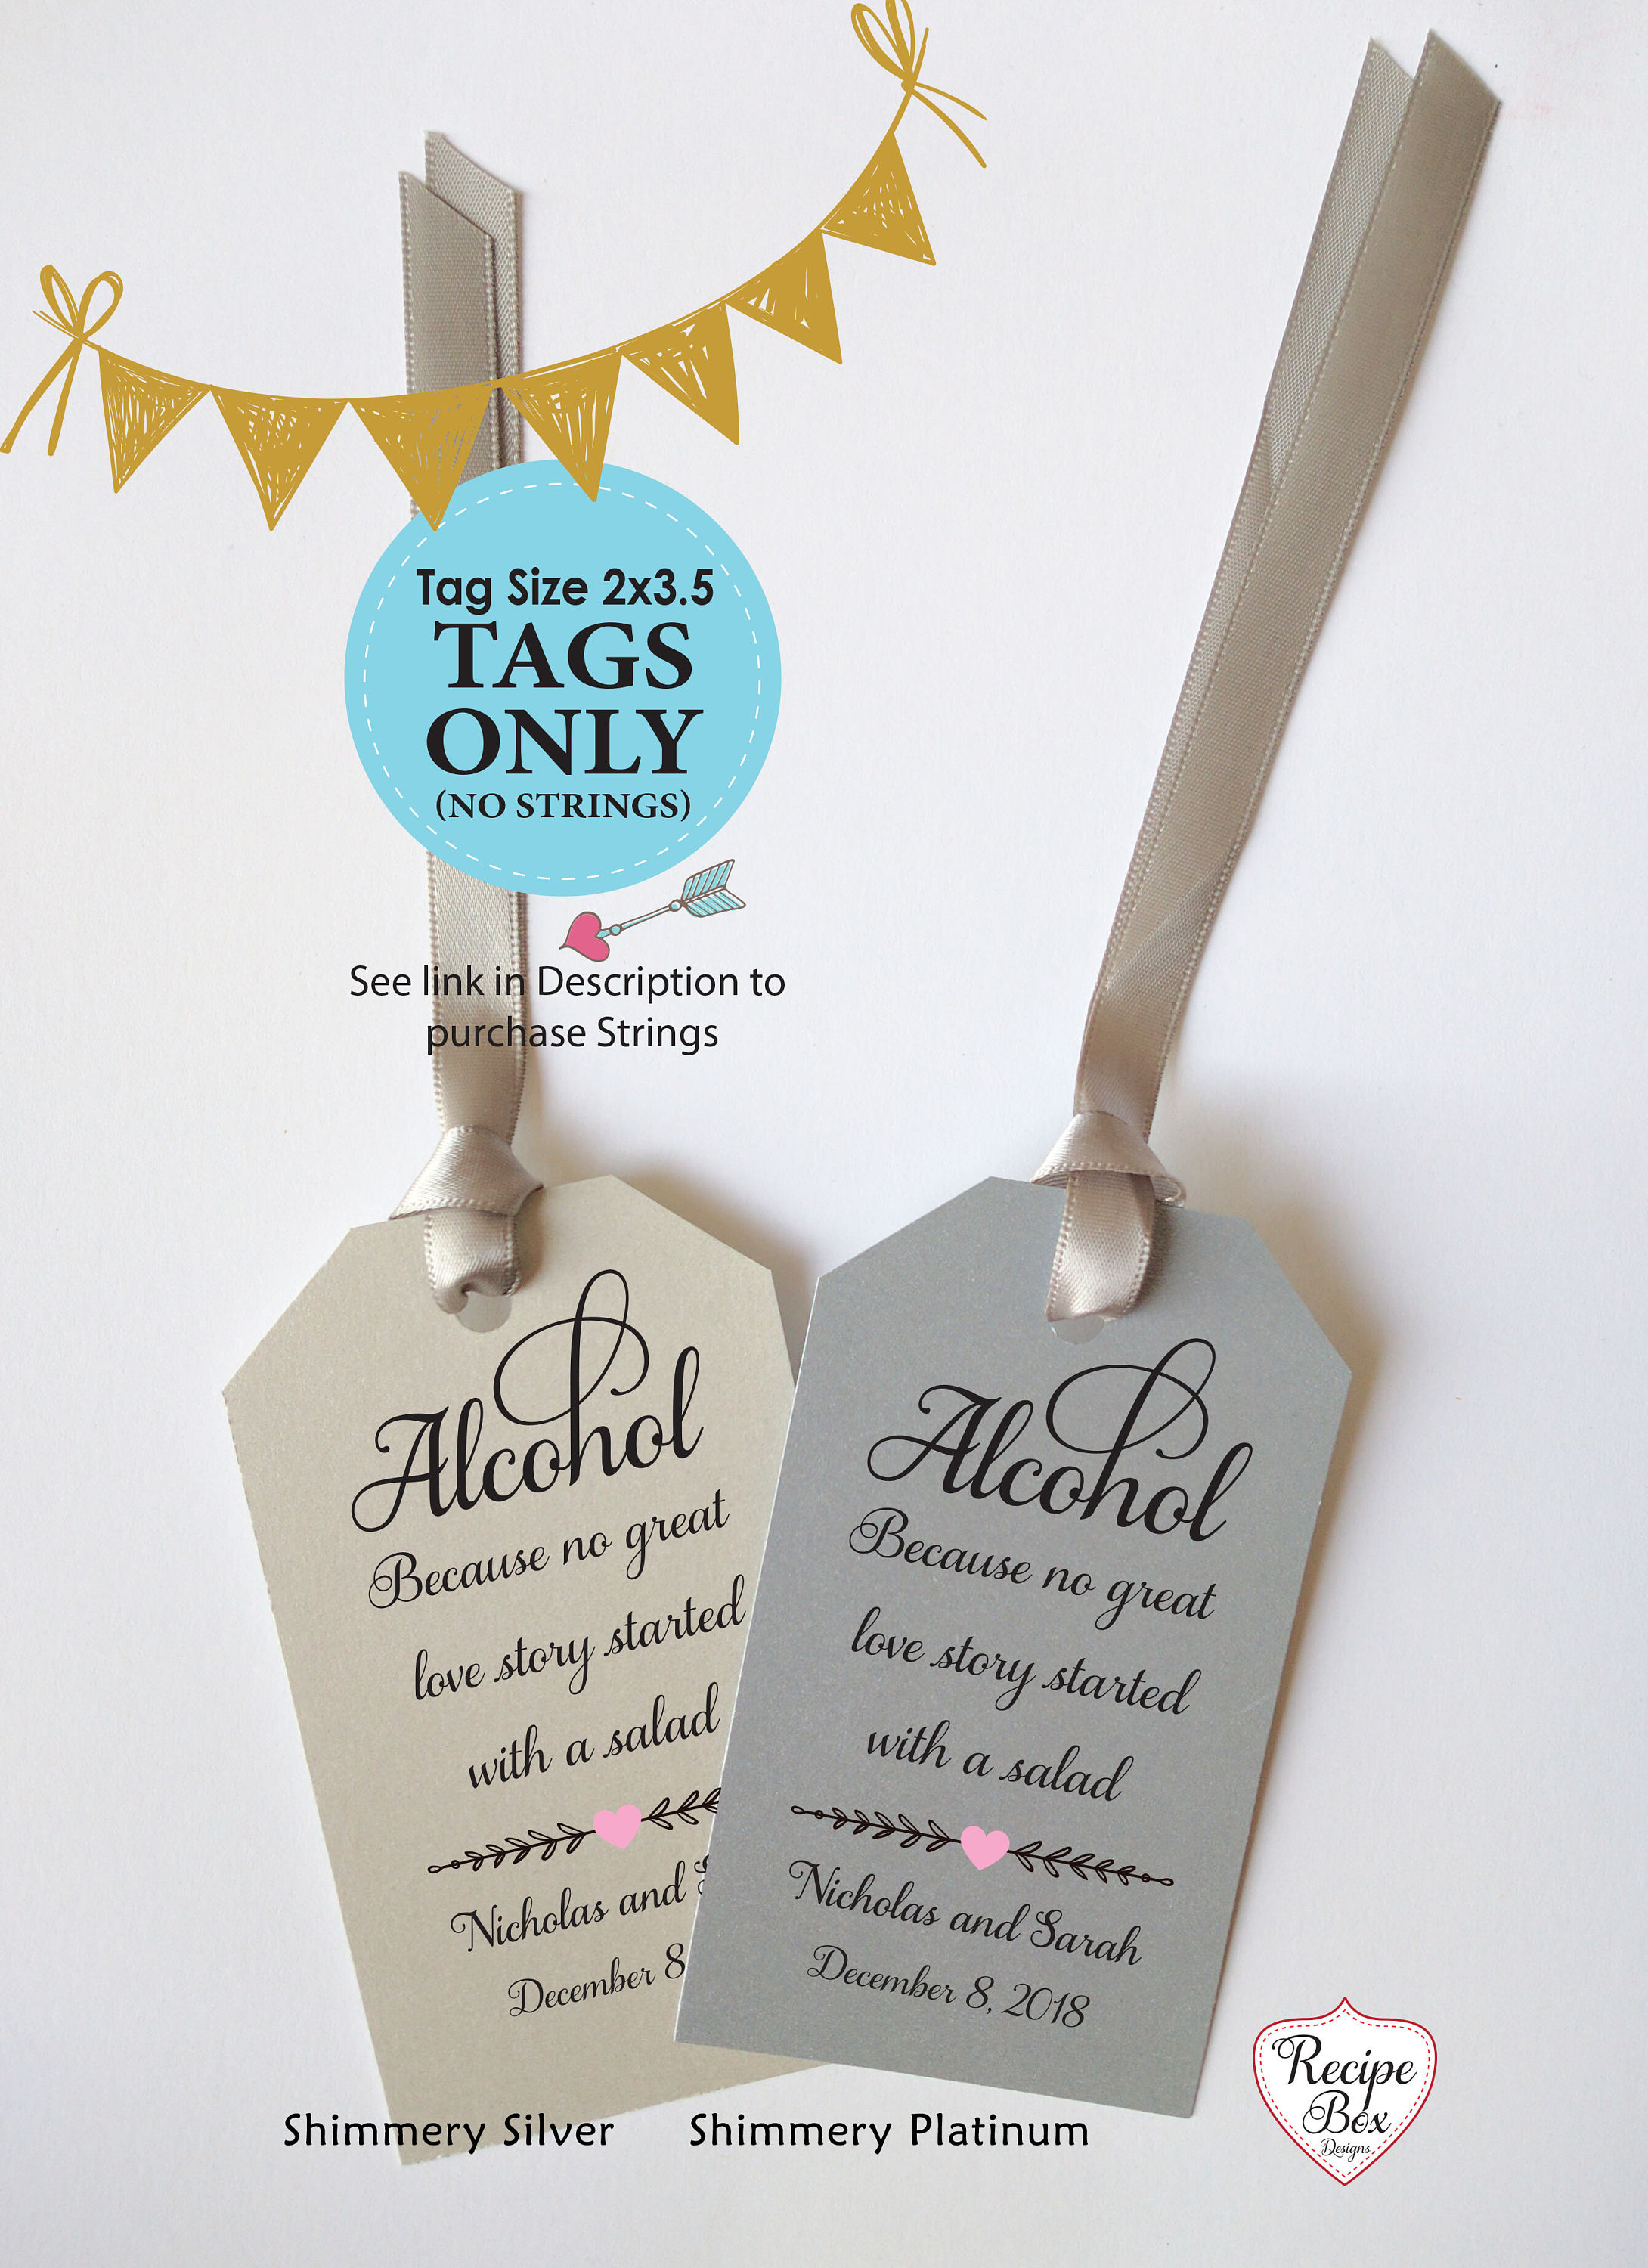 Alcohol because no love story Alcohol Favor Tags Champagne